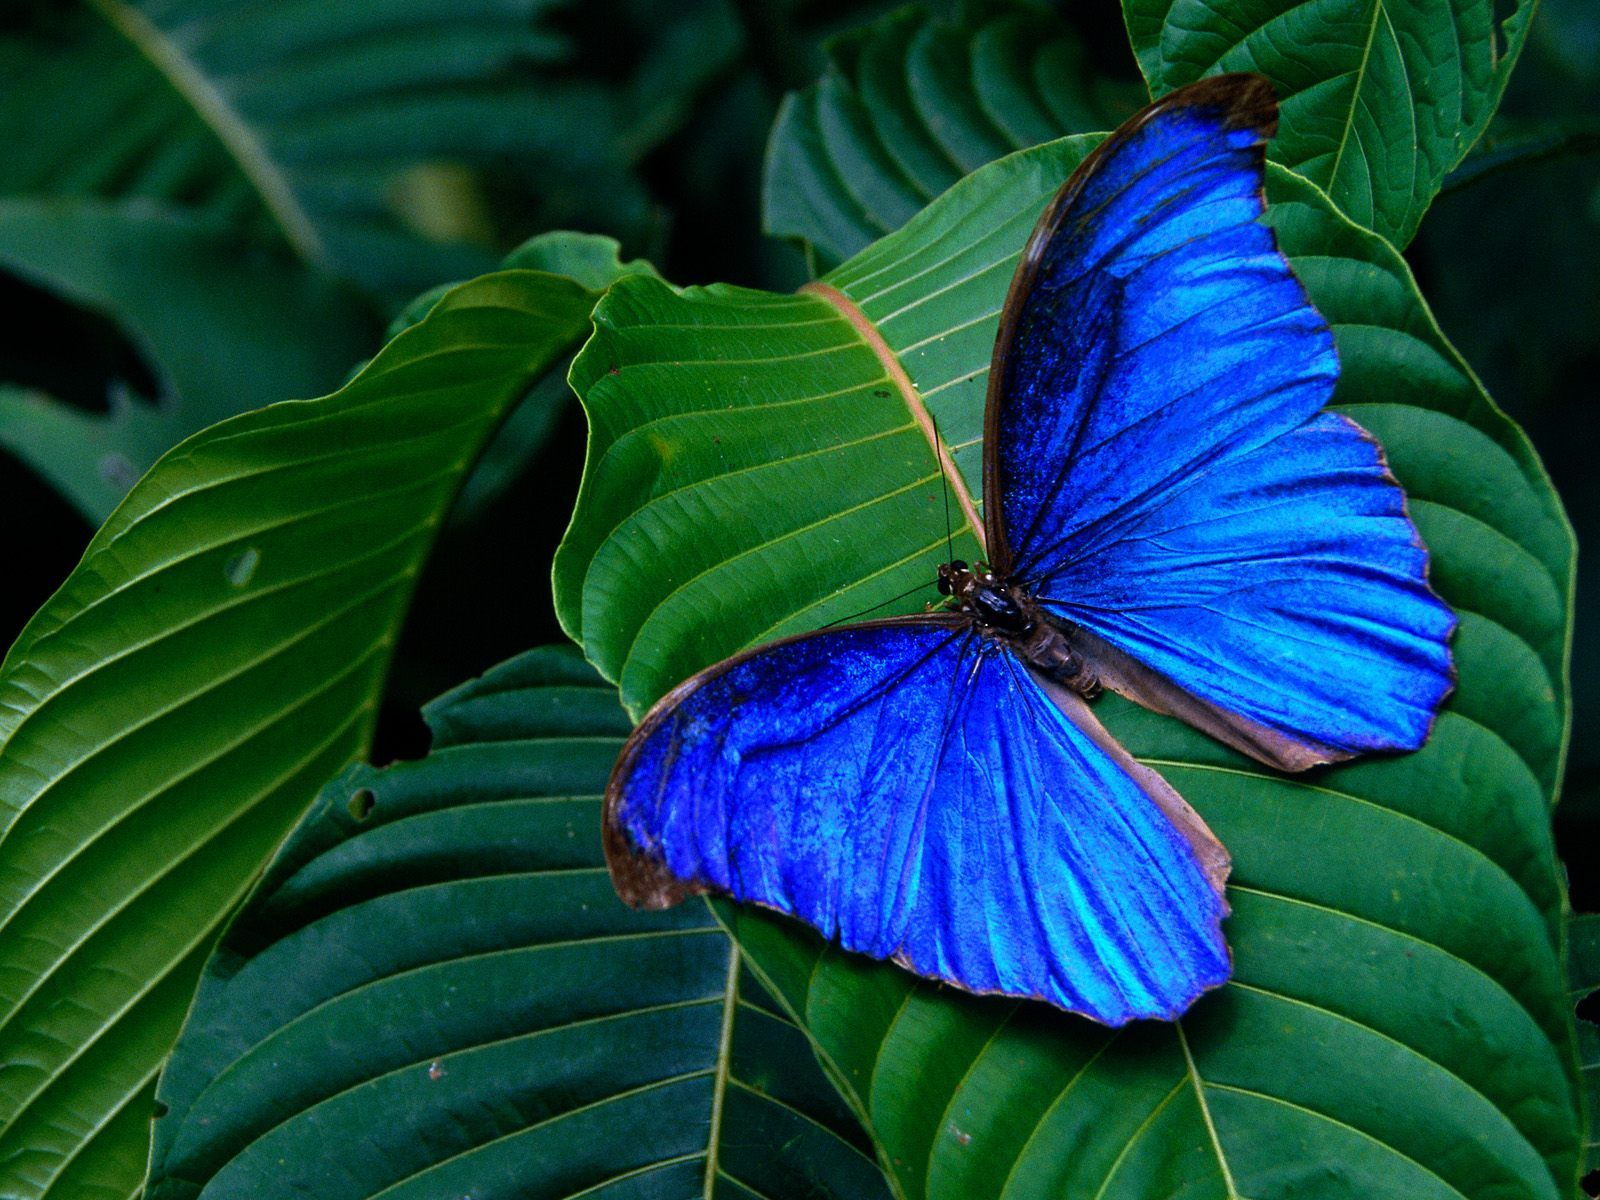 When its iridescent blue wings are open, the butterfly uses its shiny scales to blind and scare away predators.